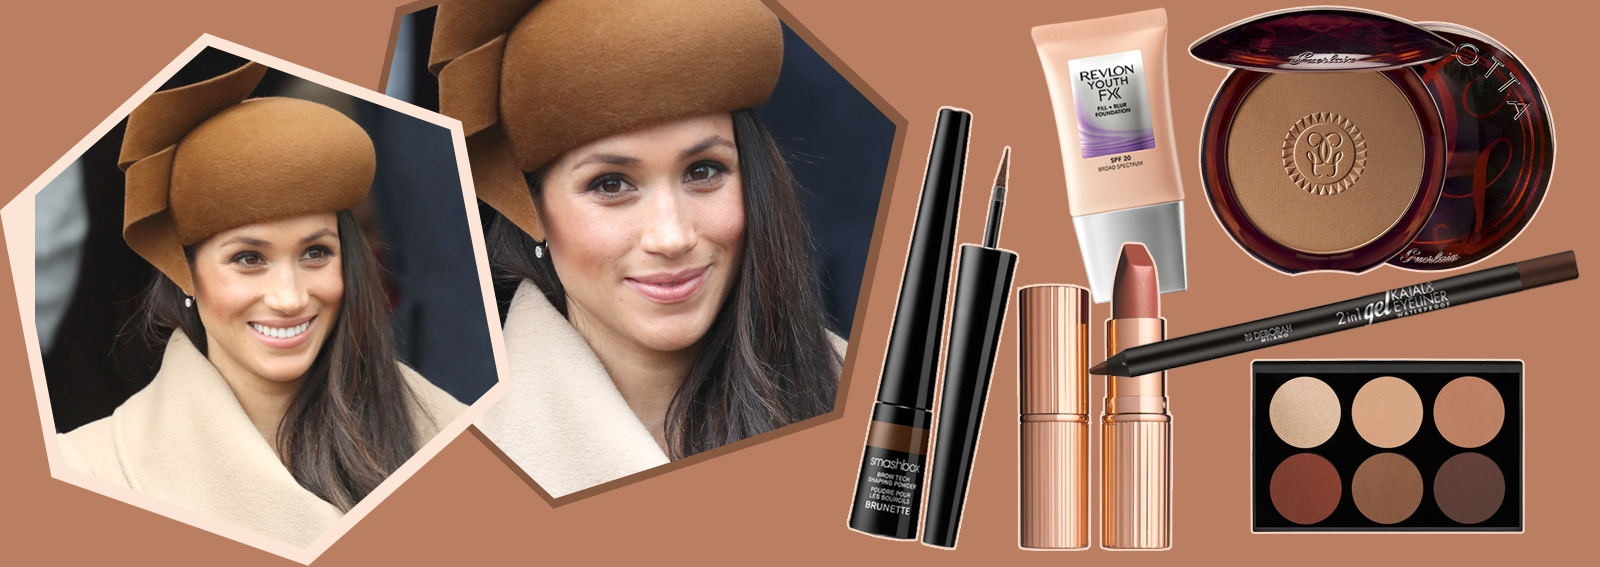 meghan markle copia il look rossetto preferito DESKTOP_markle_beauty_look